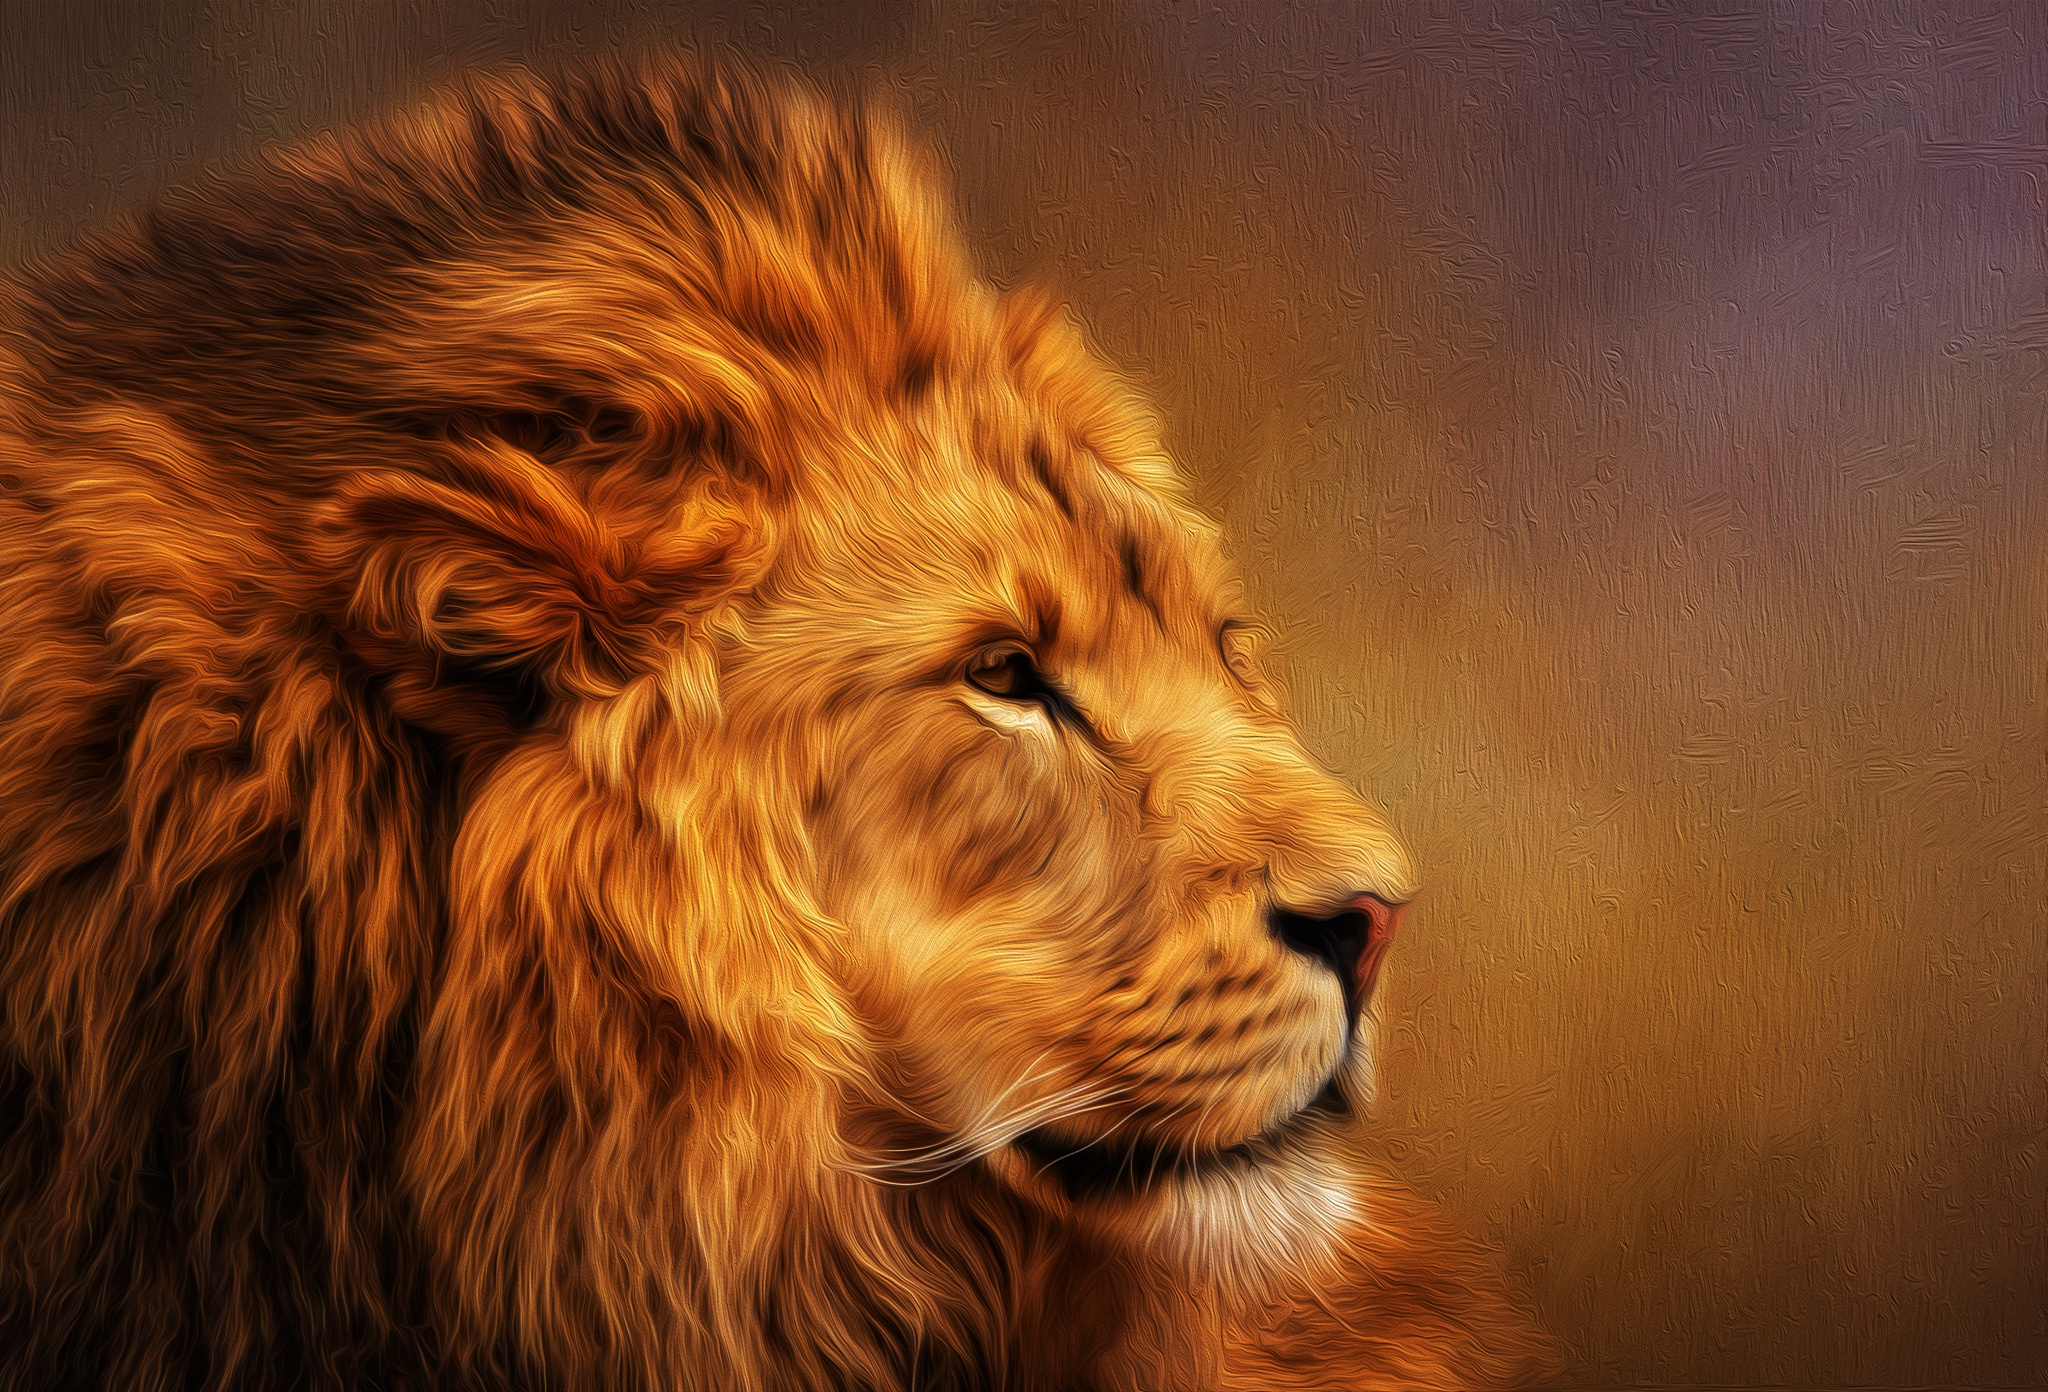 Lion Hd Wallpaper Background Image 2048x1392 Id975729